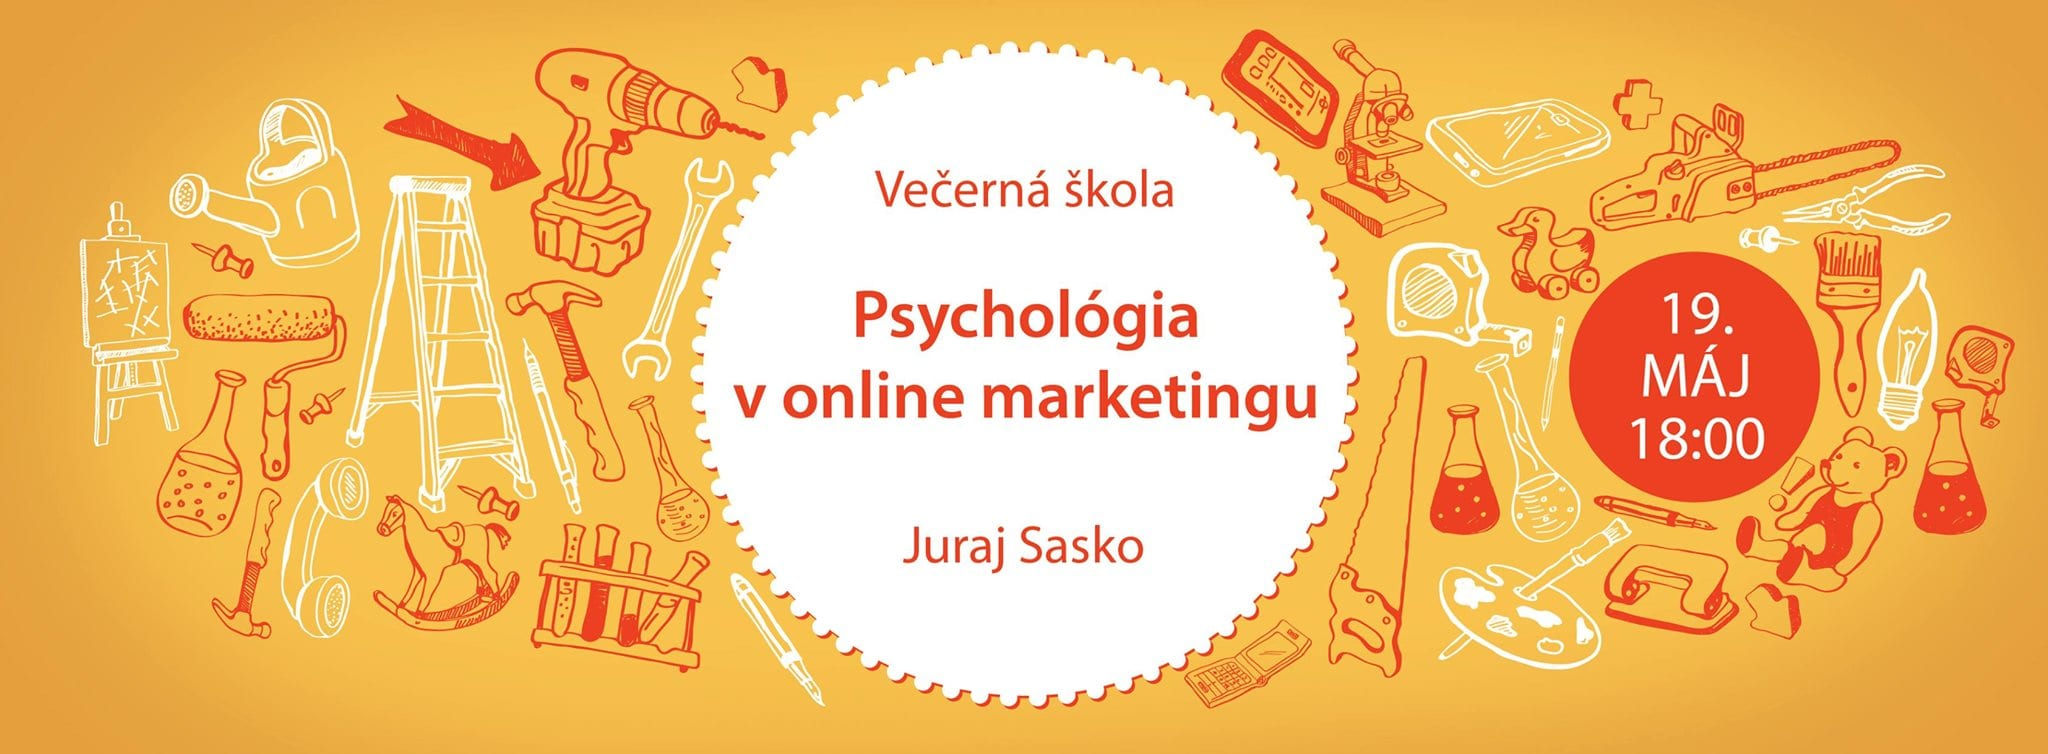 11169698 853525271395974 5883176934054906878 o - Psychológia v online marketingu